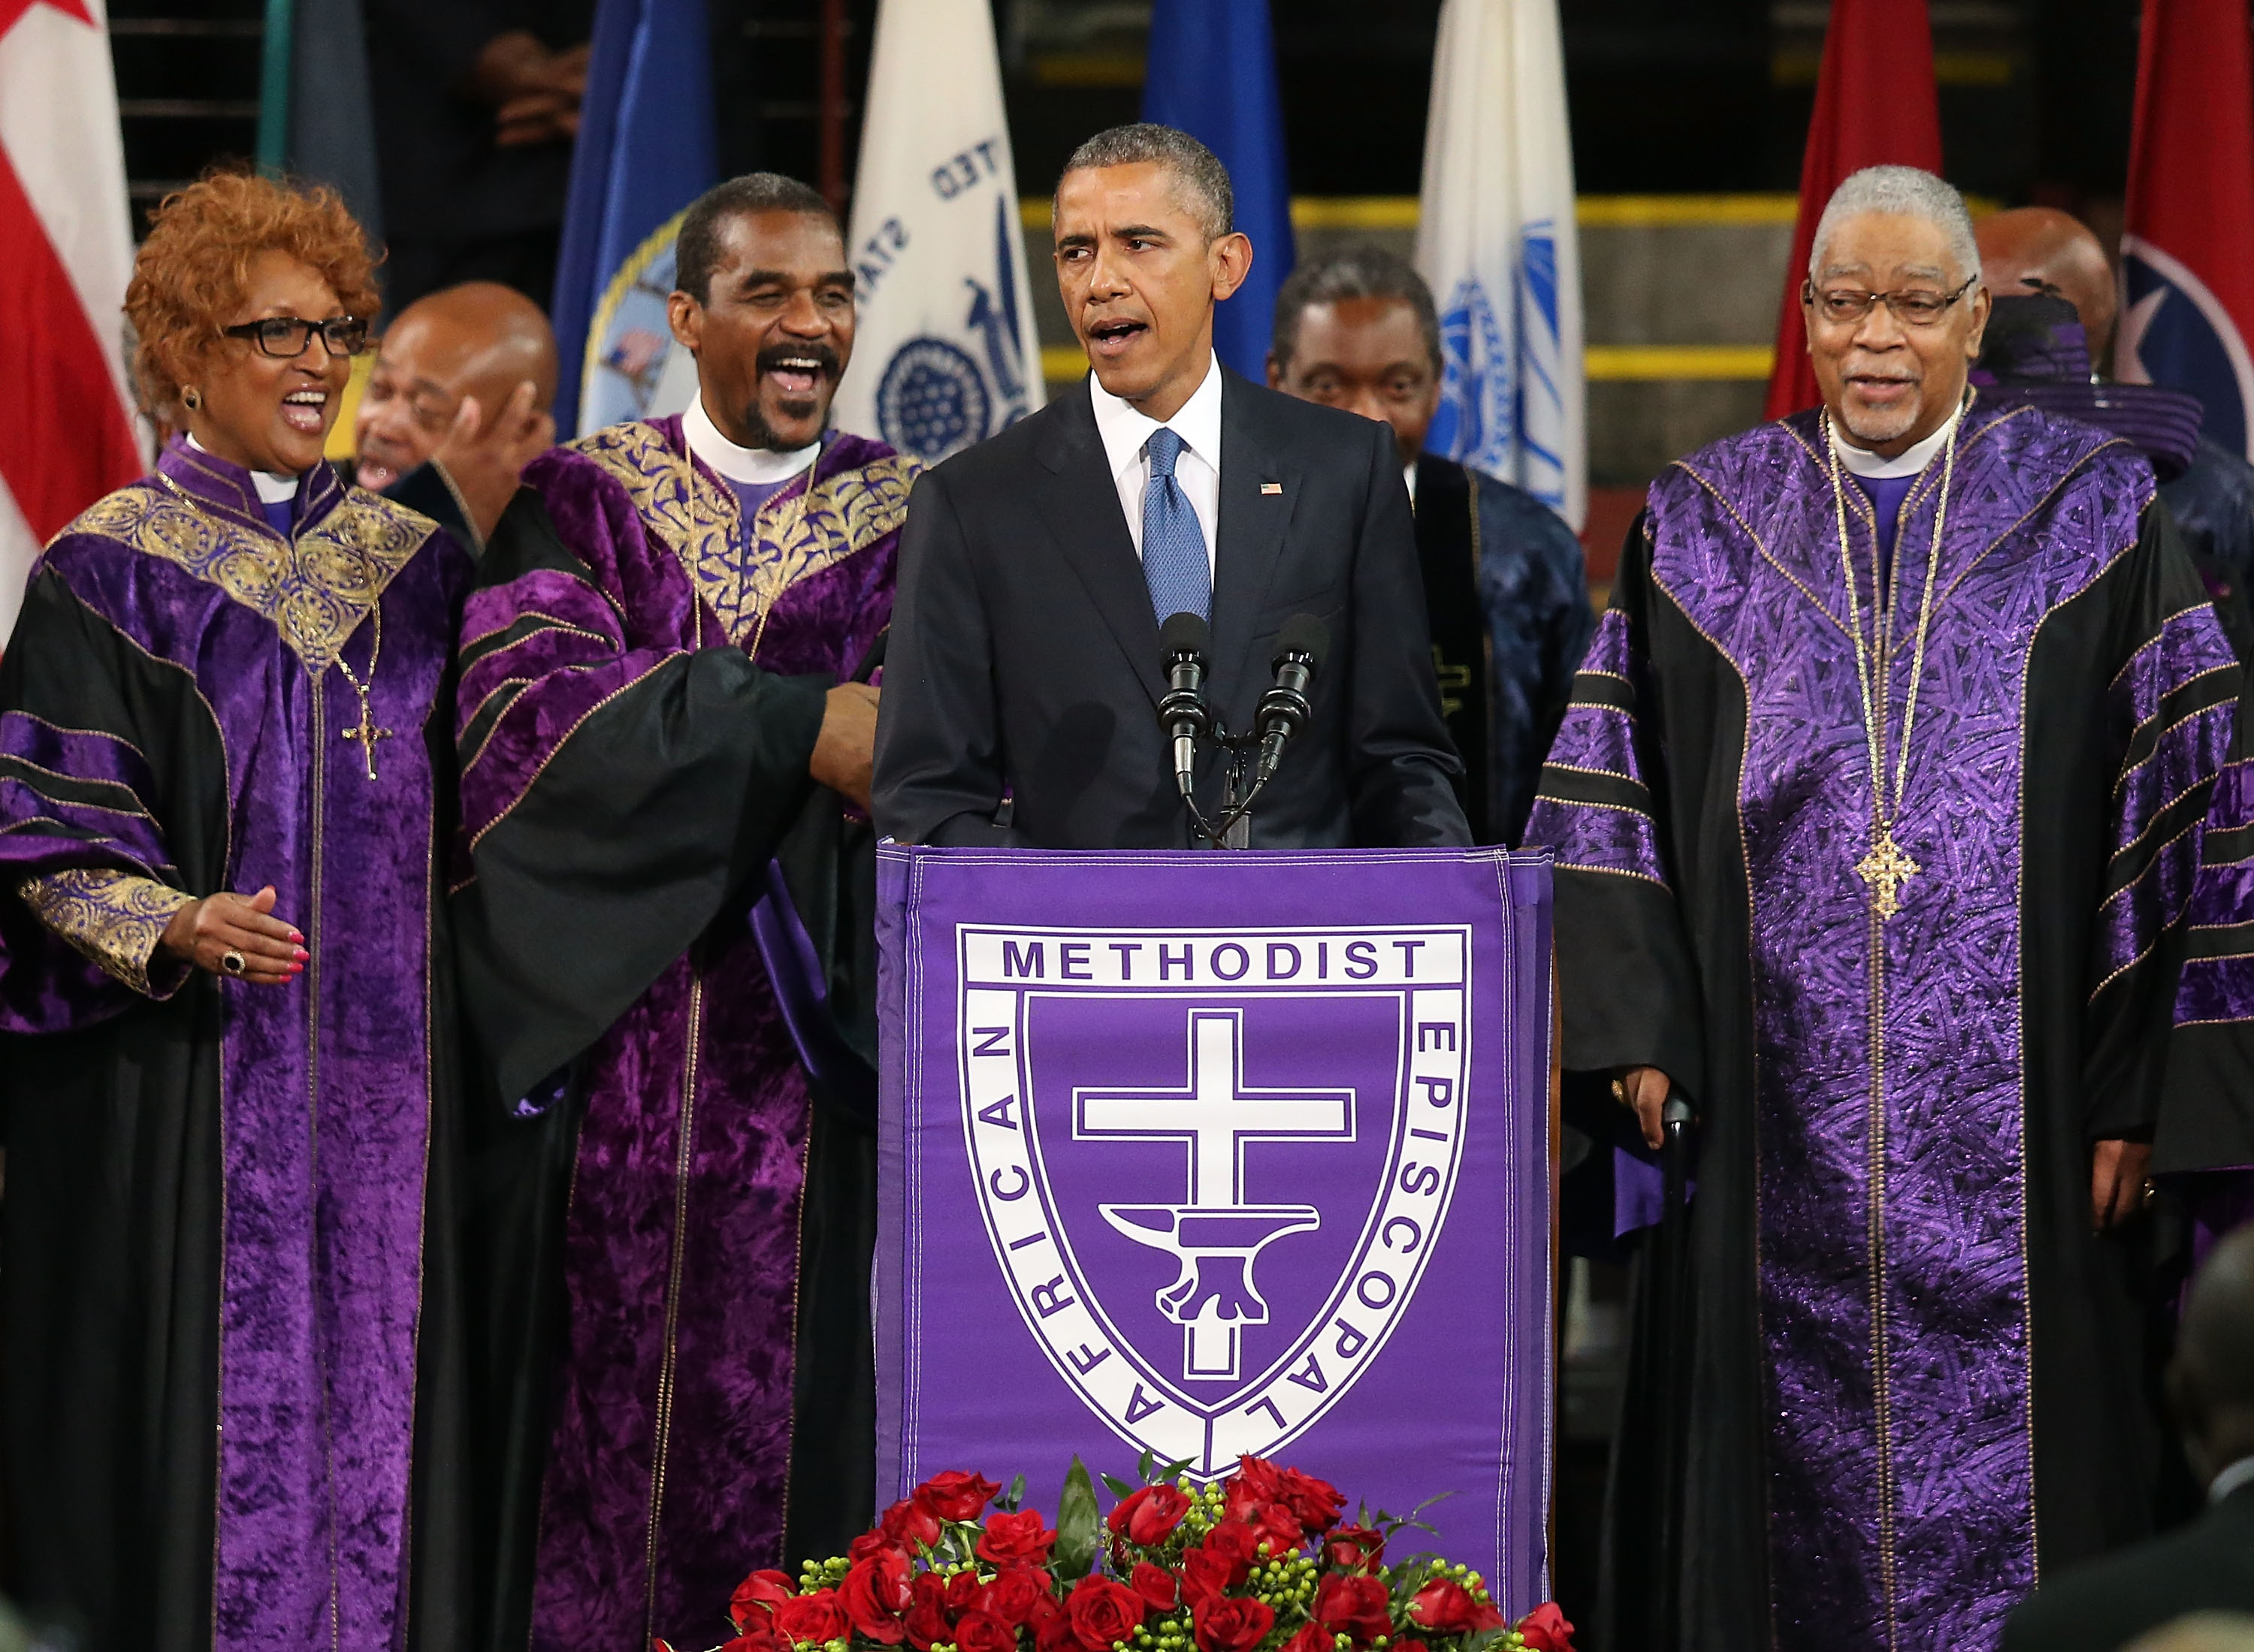 President Barack Obama sings  Amazing Grace  as he delivers the eulogy for South Carolina state senator and Rev. Clementa Pinckney during Pinckney's funeral service June 26, 2015 in Charleston, S.C.